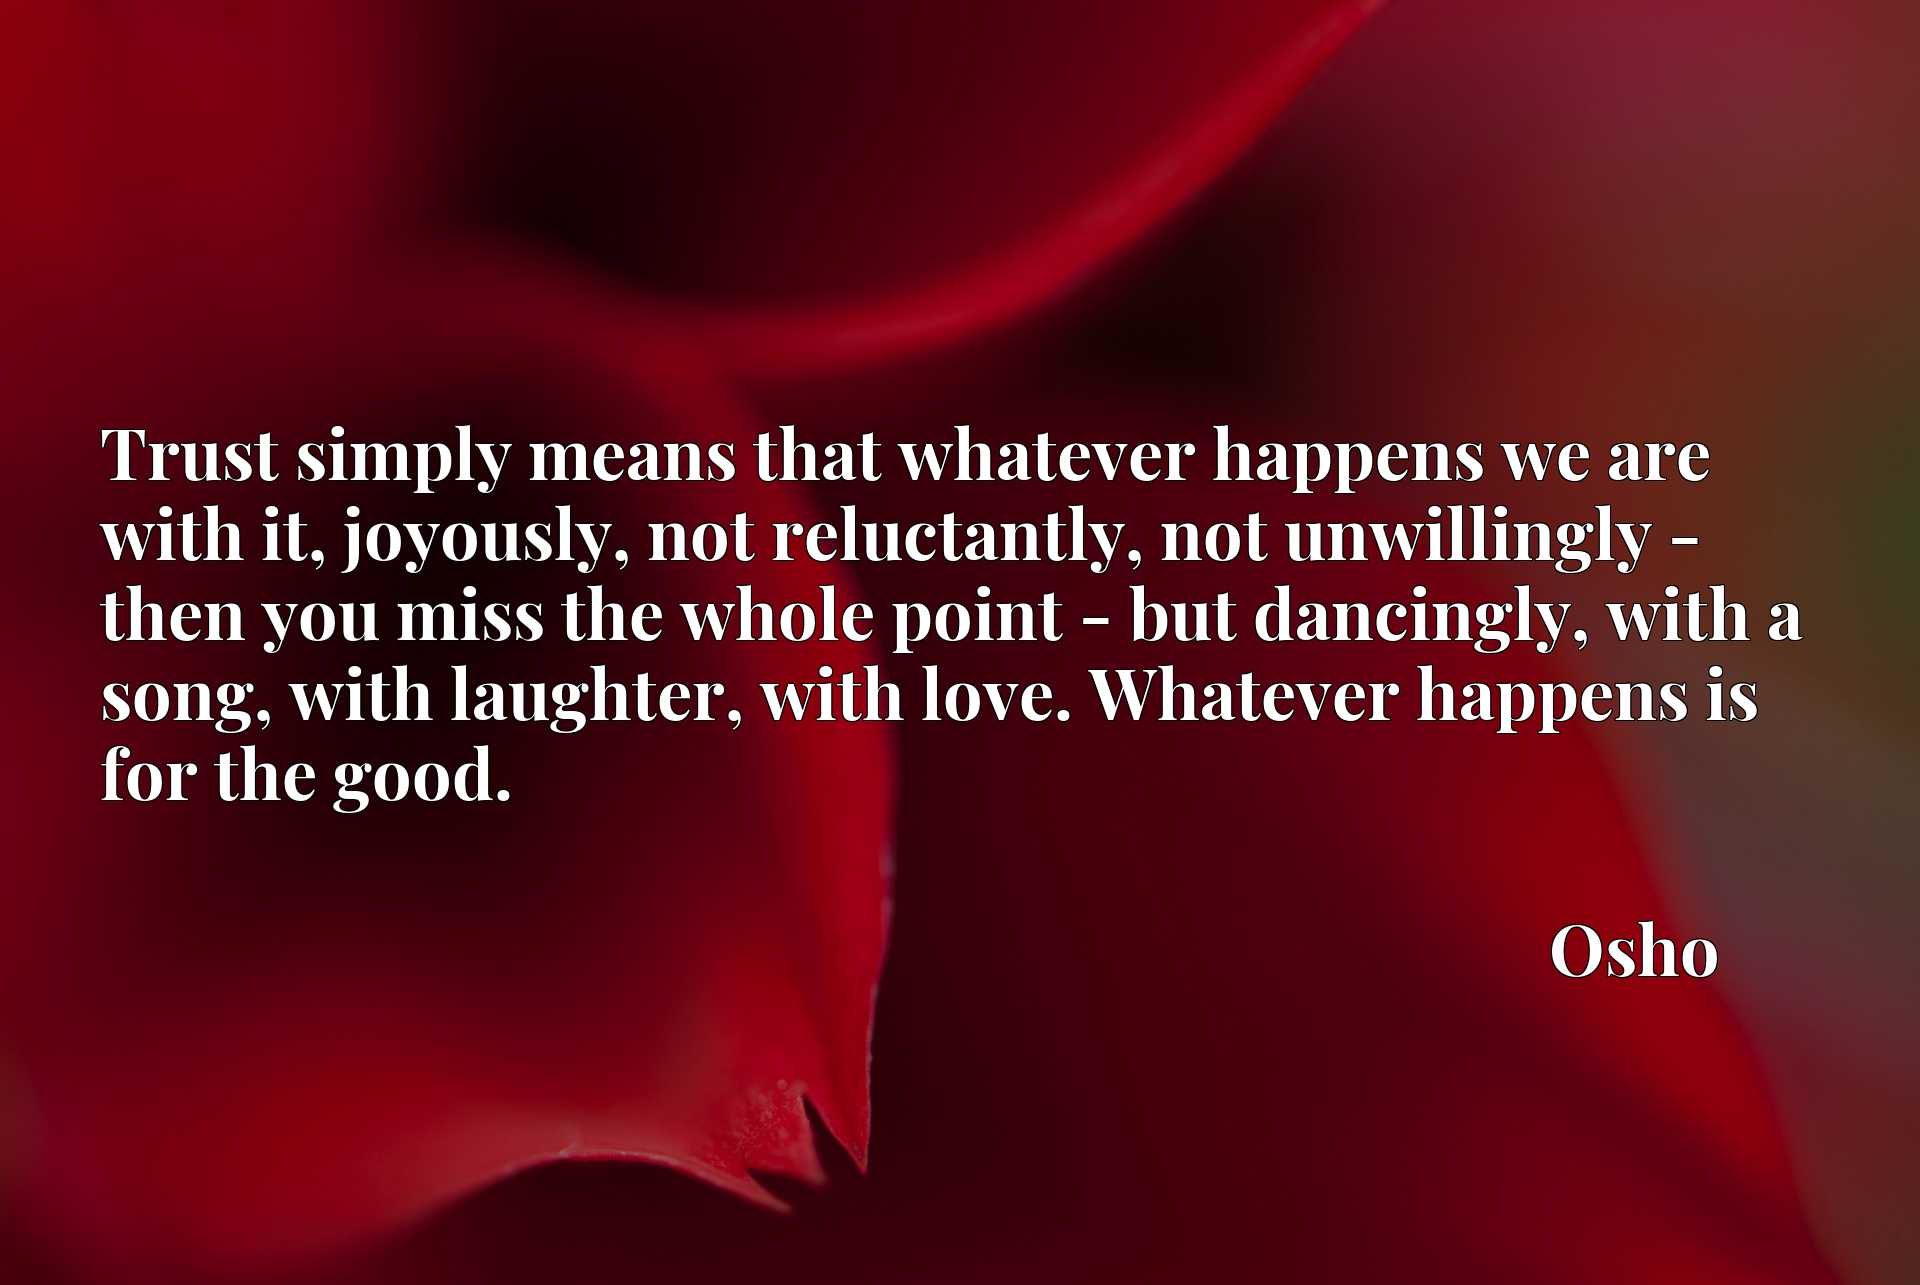 Trust simply means that whatever happens we are with it, joyously, not reluctantly, not unwillingly - then you miss the whole point - but dancingly, with a song, with laughter, with love. Whatever happens is for the good.